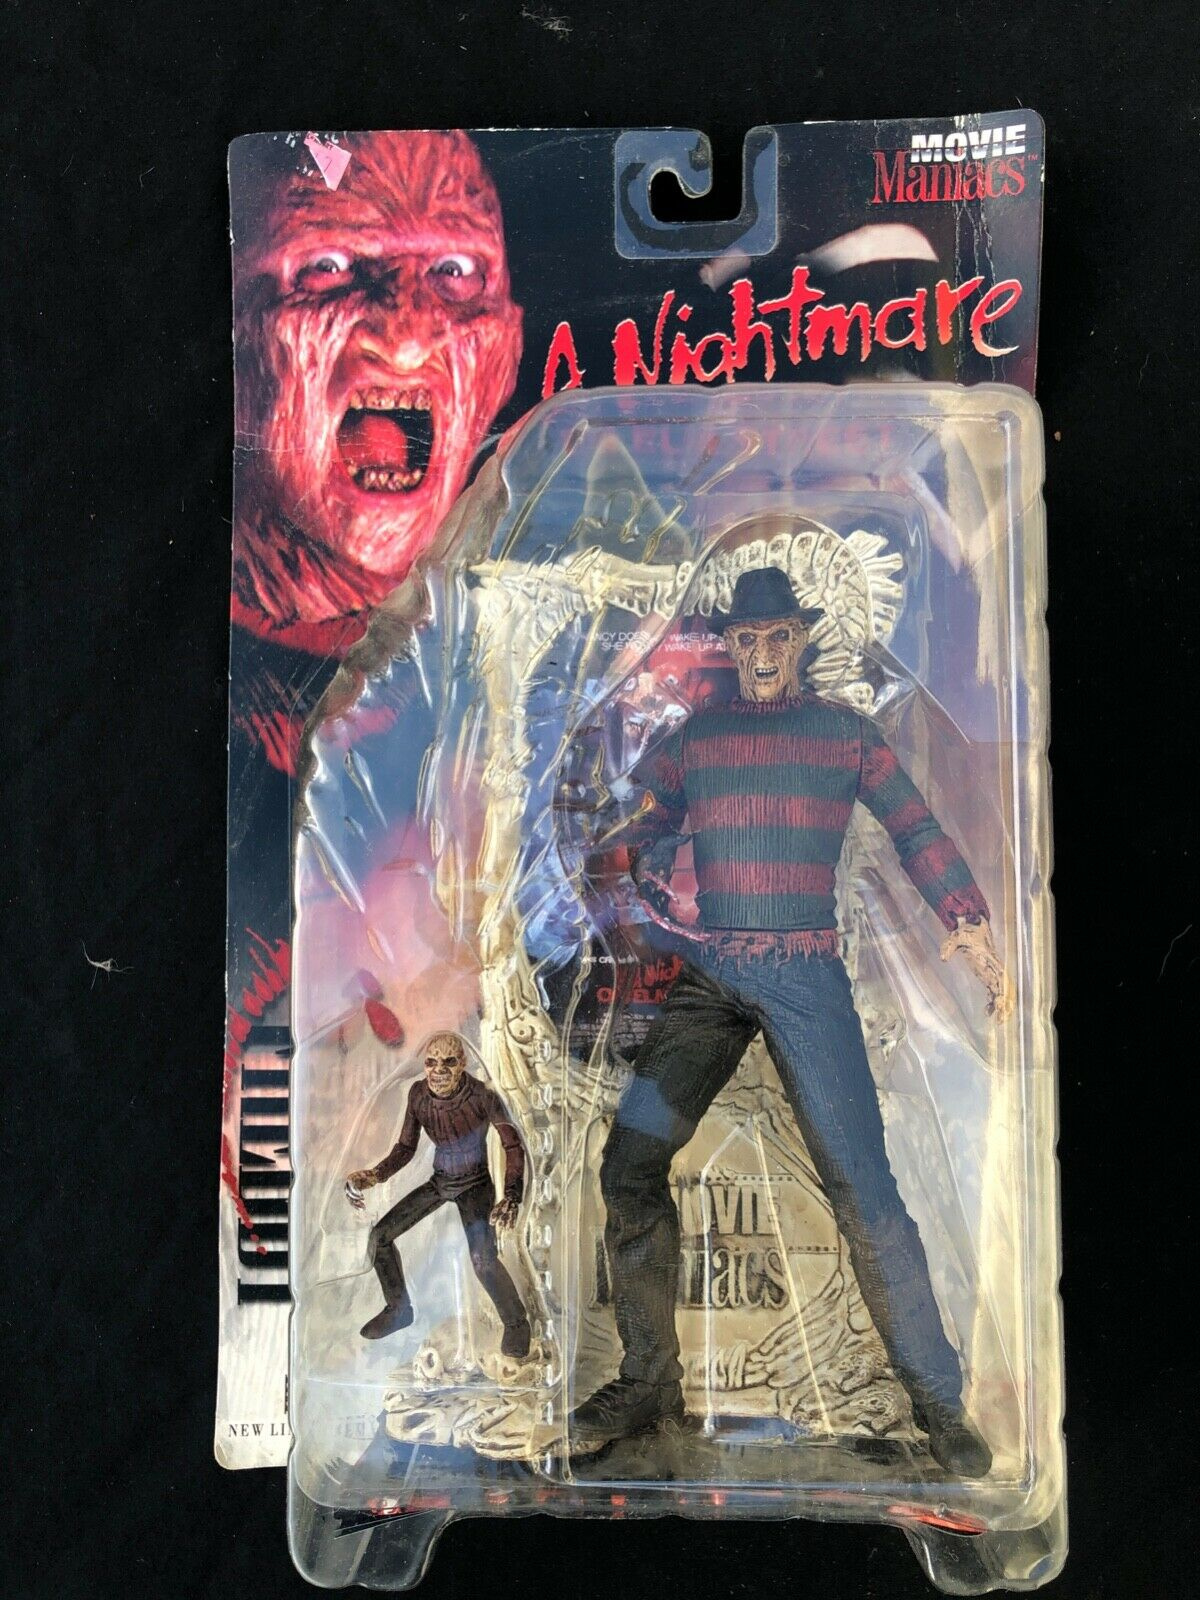 McFarlane Toys Freddy Krueger Movie Maniacs Action Action Action Figure. Rated R version 0b4d9a